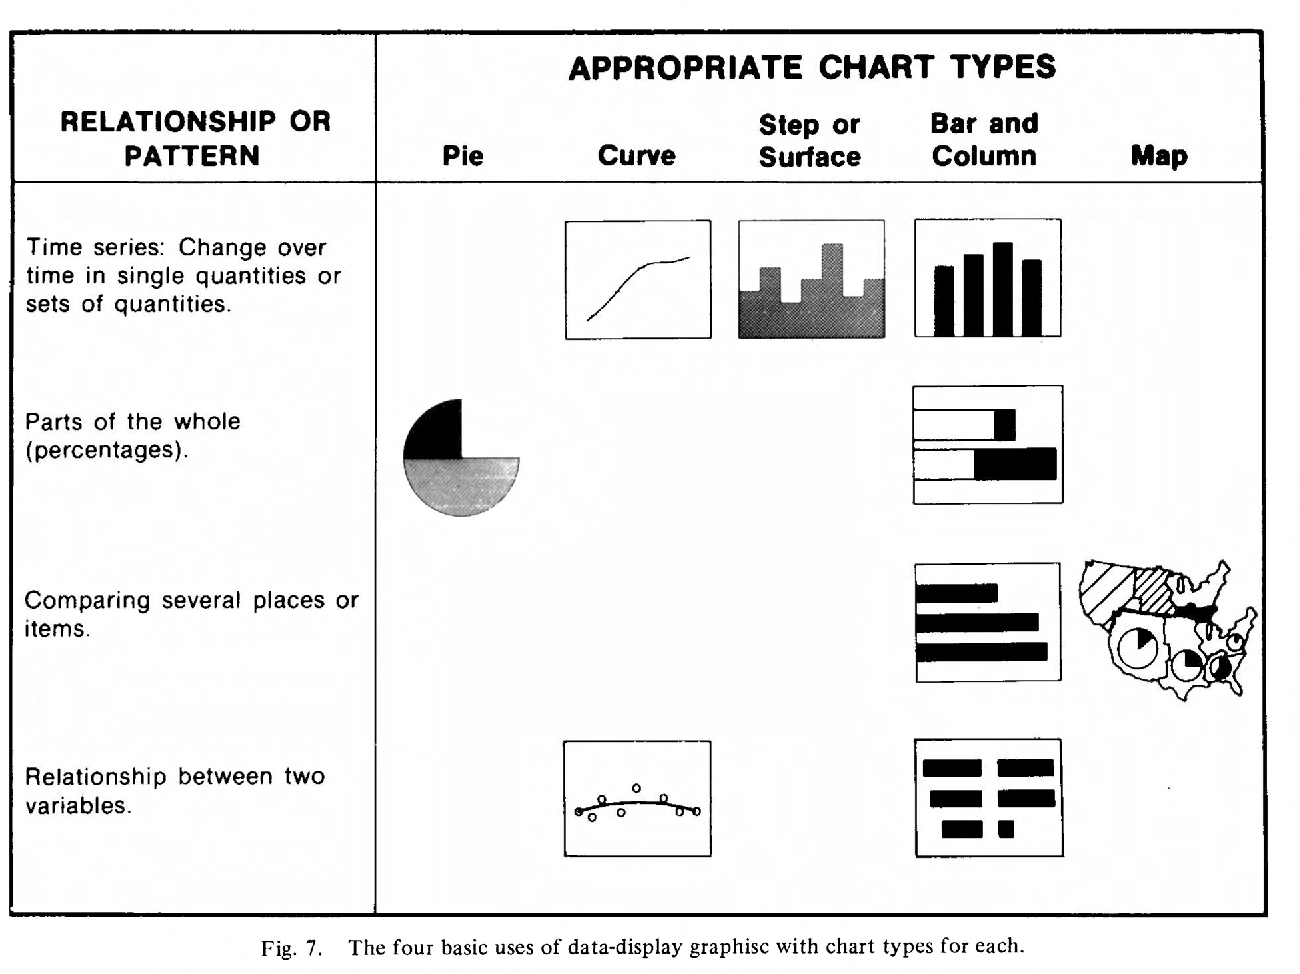 Fig. 7. The four basic uses of data-display graphisc with chart types for each.